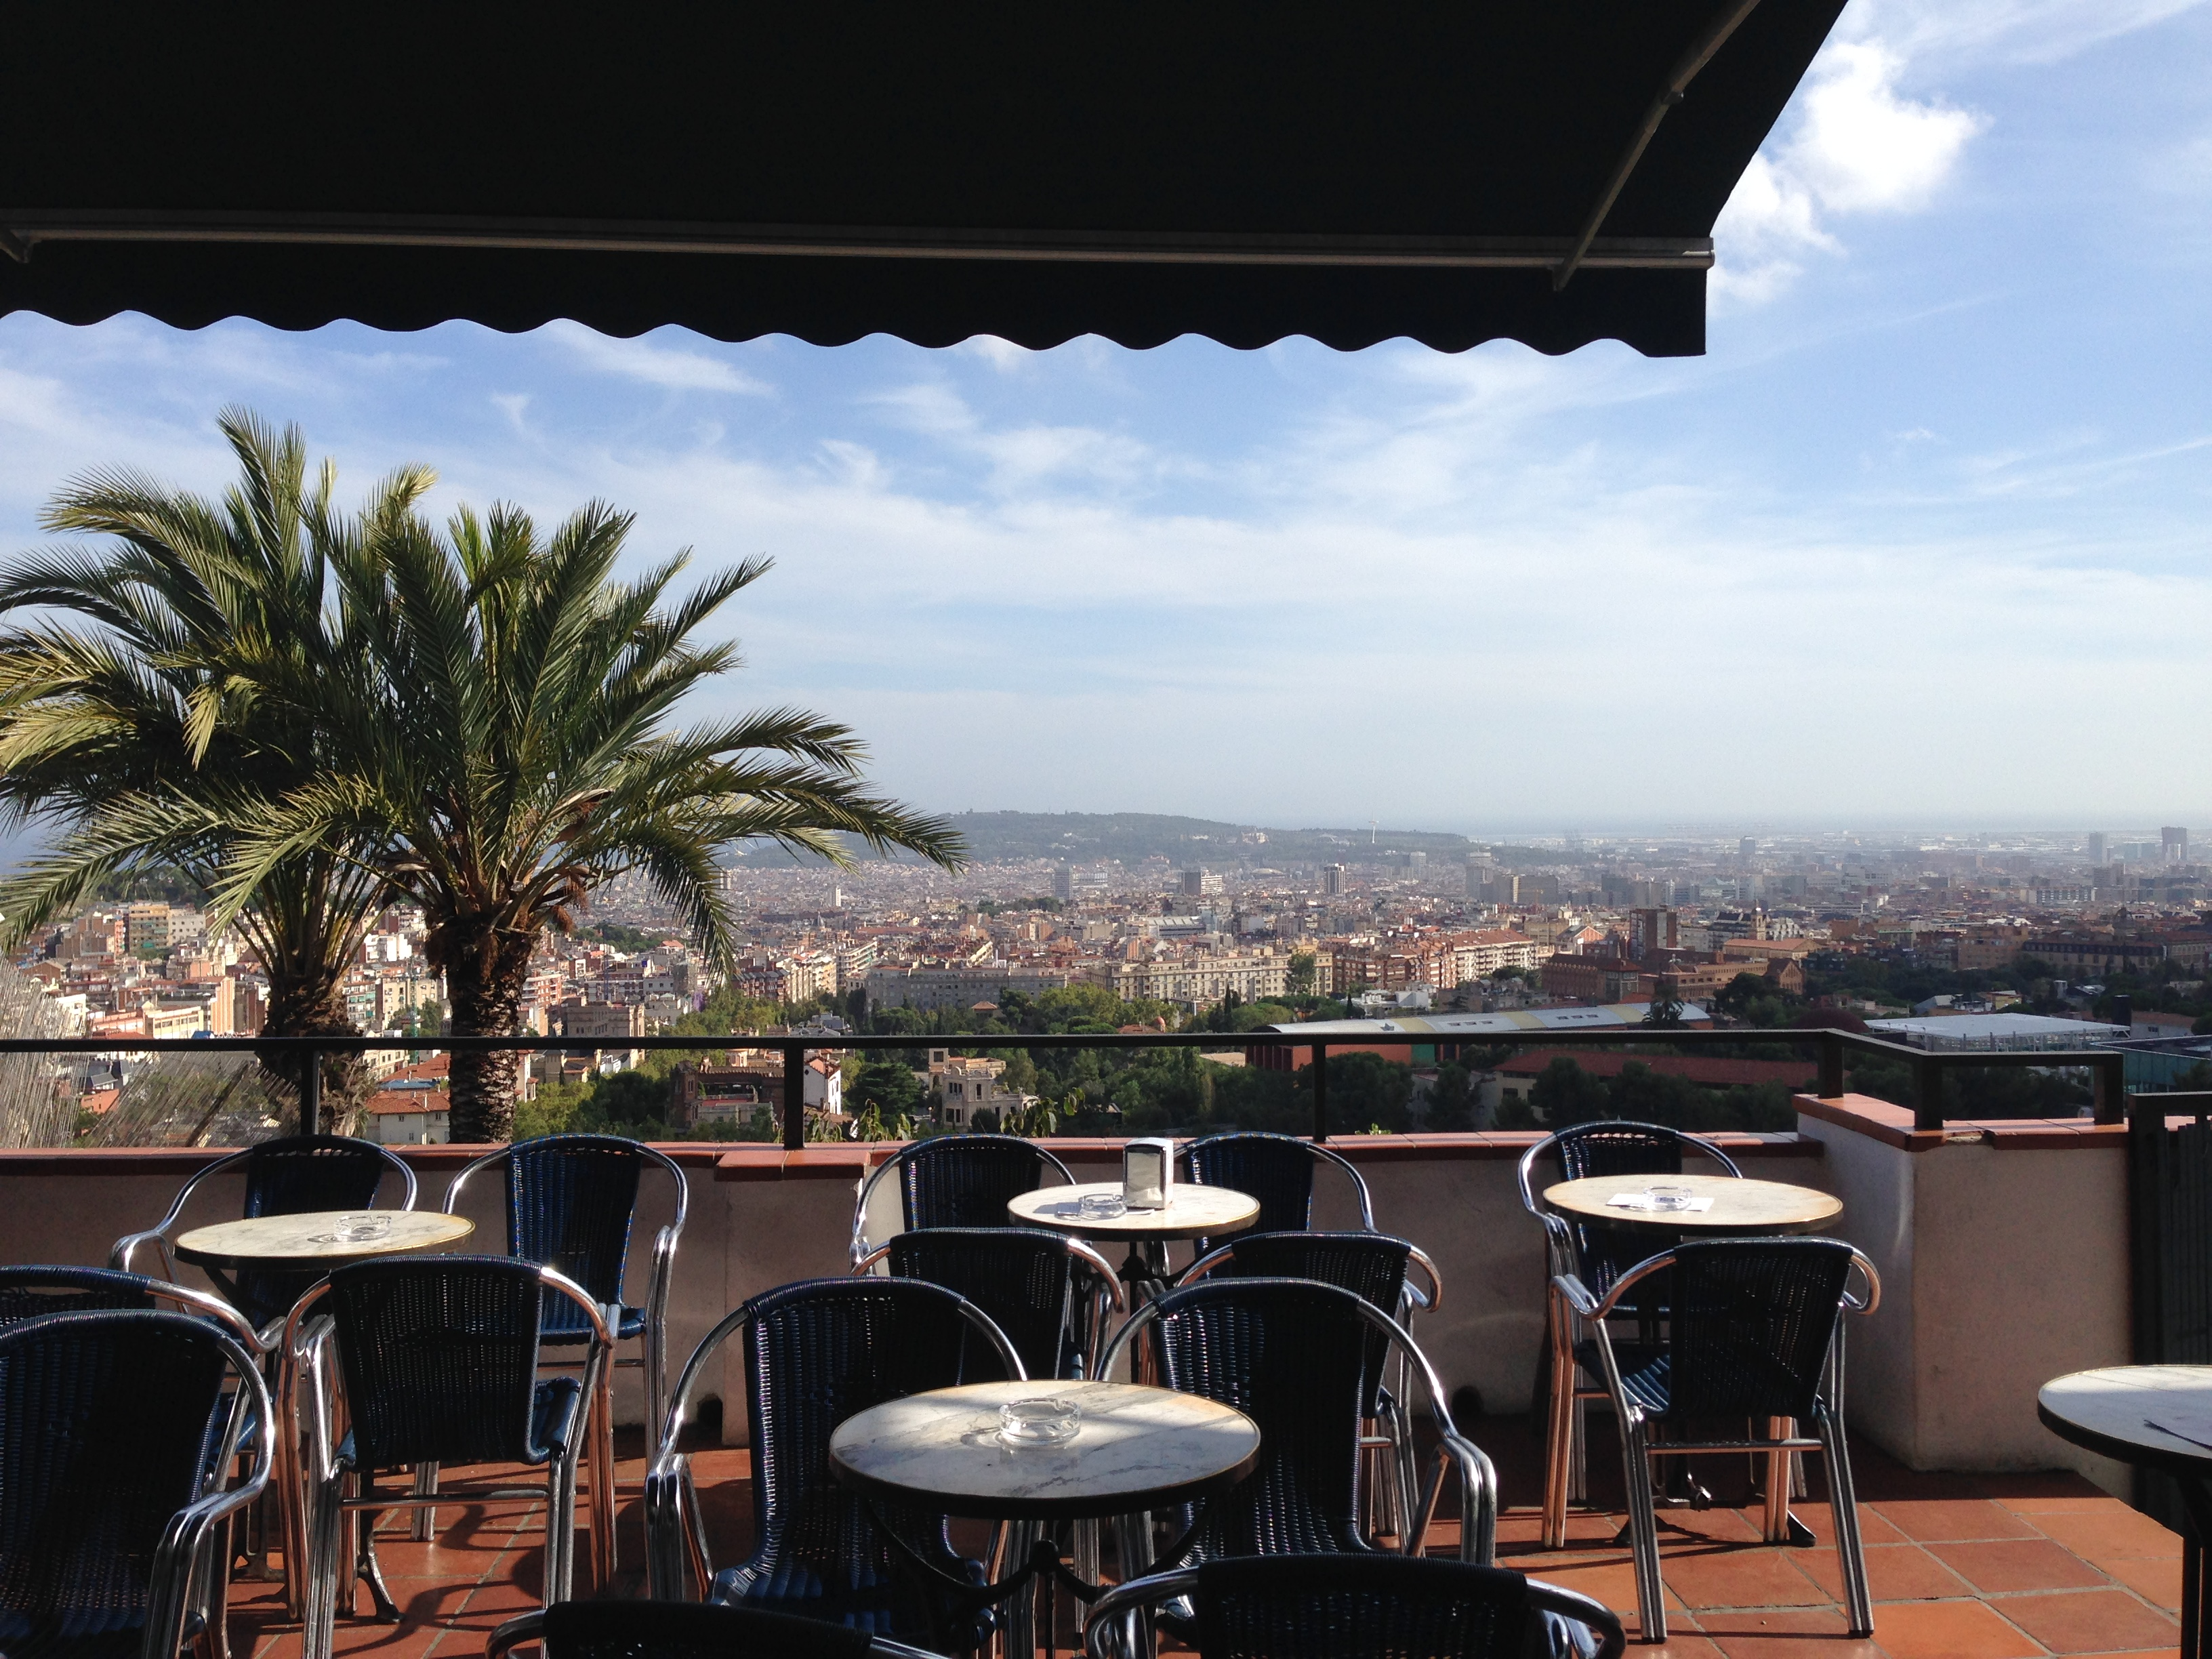 Restaurants with a view over Barcelona, Mirablau